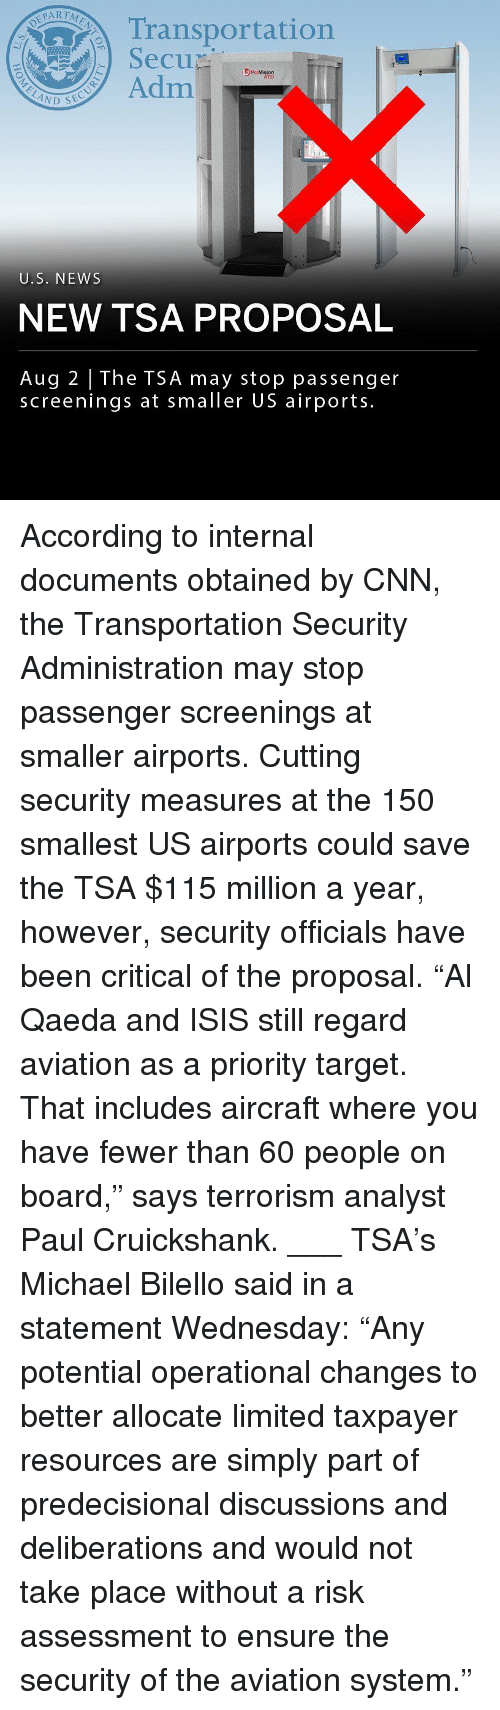 """cnn.com, Isis, and Memes: Transportation  SecuD  se  3 ProVision  ATD  Adm  U.S. NEWS  NEW TSA PROPOSAL  Aug 2 The TSA may stop passenger  screenings at smaller US airports. According to internal documents obtained by CNN, the Transportation Security Administration may stop passenger screenings at smaller airports. Cutting security measures at the 150 smallest US airports could save the TSA $115 million a year, however, security officials have been critical of the proposal. """"Al Qaeda and ISIS still regard aviation as a priority target. That includes aircraft where you have fewer than 60 people on board,"""" says terrorism analyst Paul Cruickshank. ___ TSA's Michael Bilello said in a statement Wednesday: """"Any potential operational changes to better allocate limited taxpayer resources are simply part of predecisional discussions and deliberations and would not take place without a risk assessment to ensure the security of the aviation system."""""""